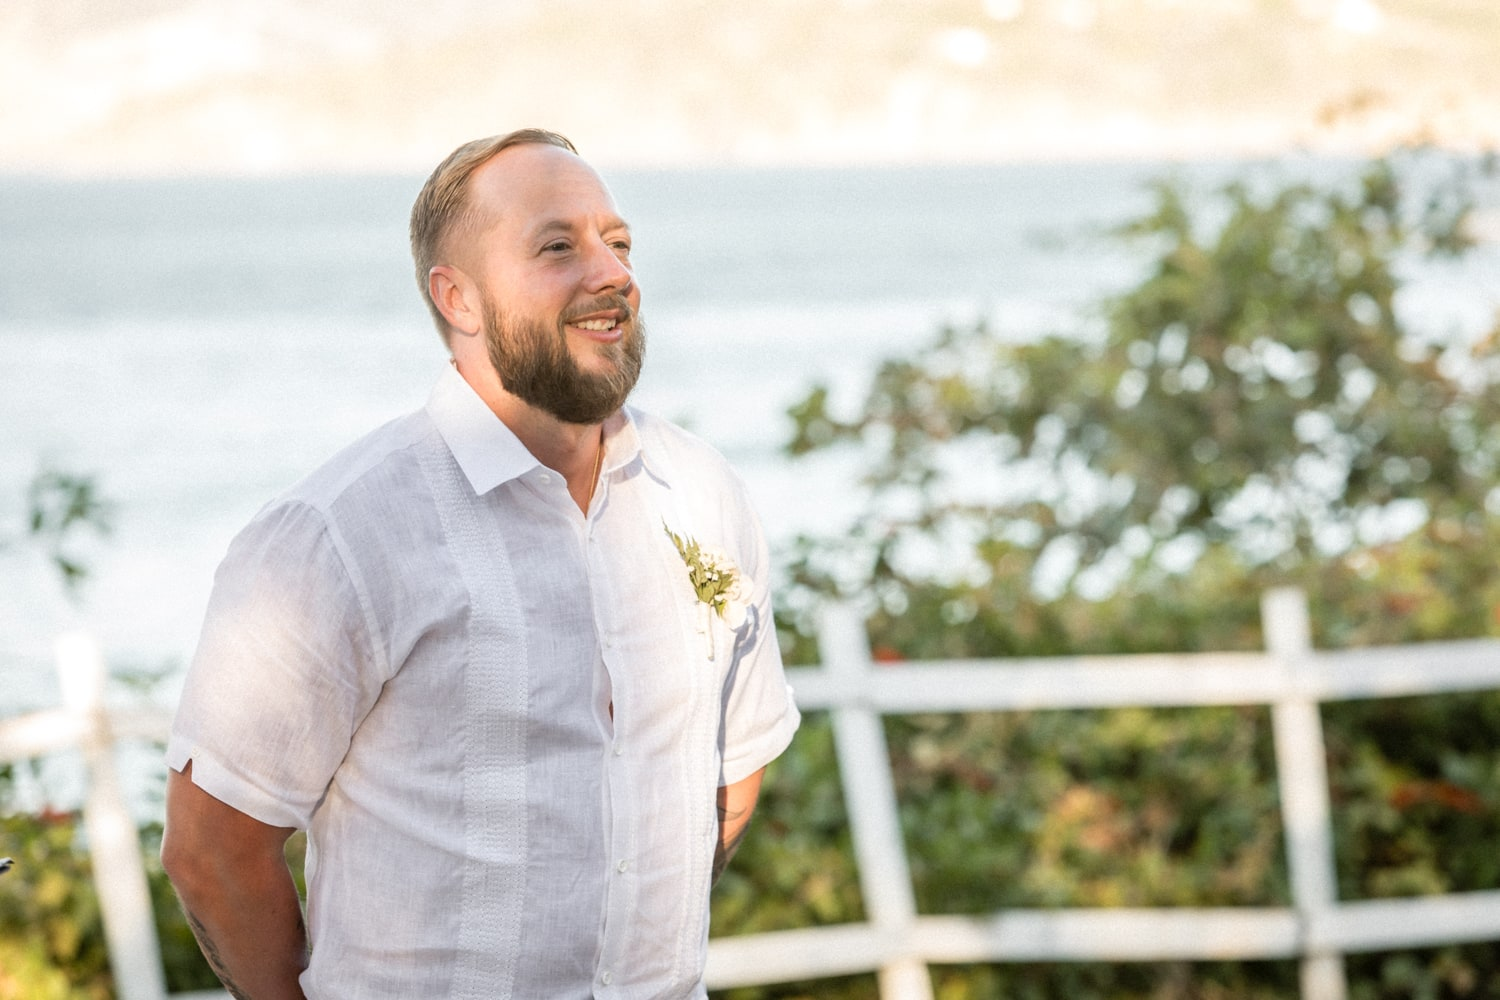 Groom waits for bride at altar with amazing ocean views.